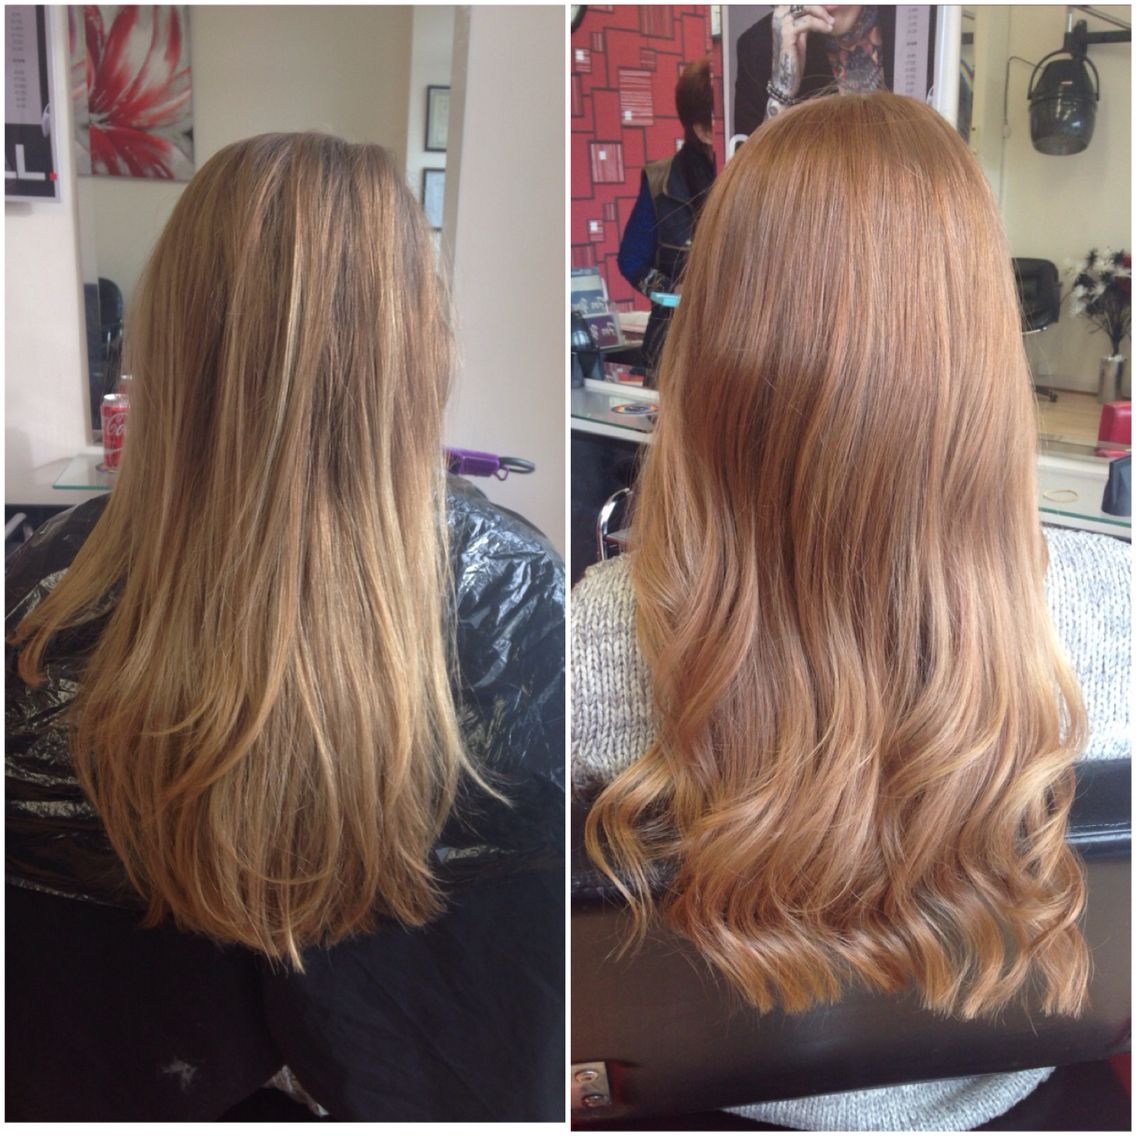 Before And After Created By Using Copper Blonde Golden Blonde And